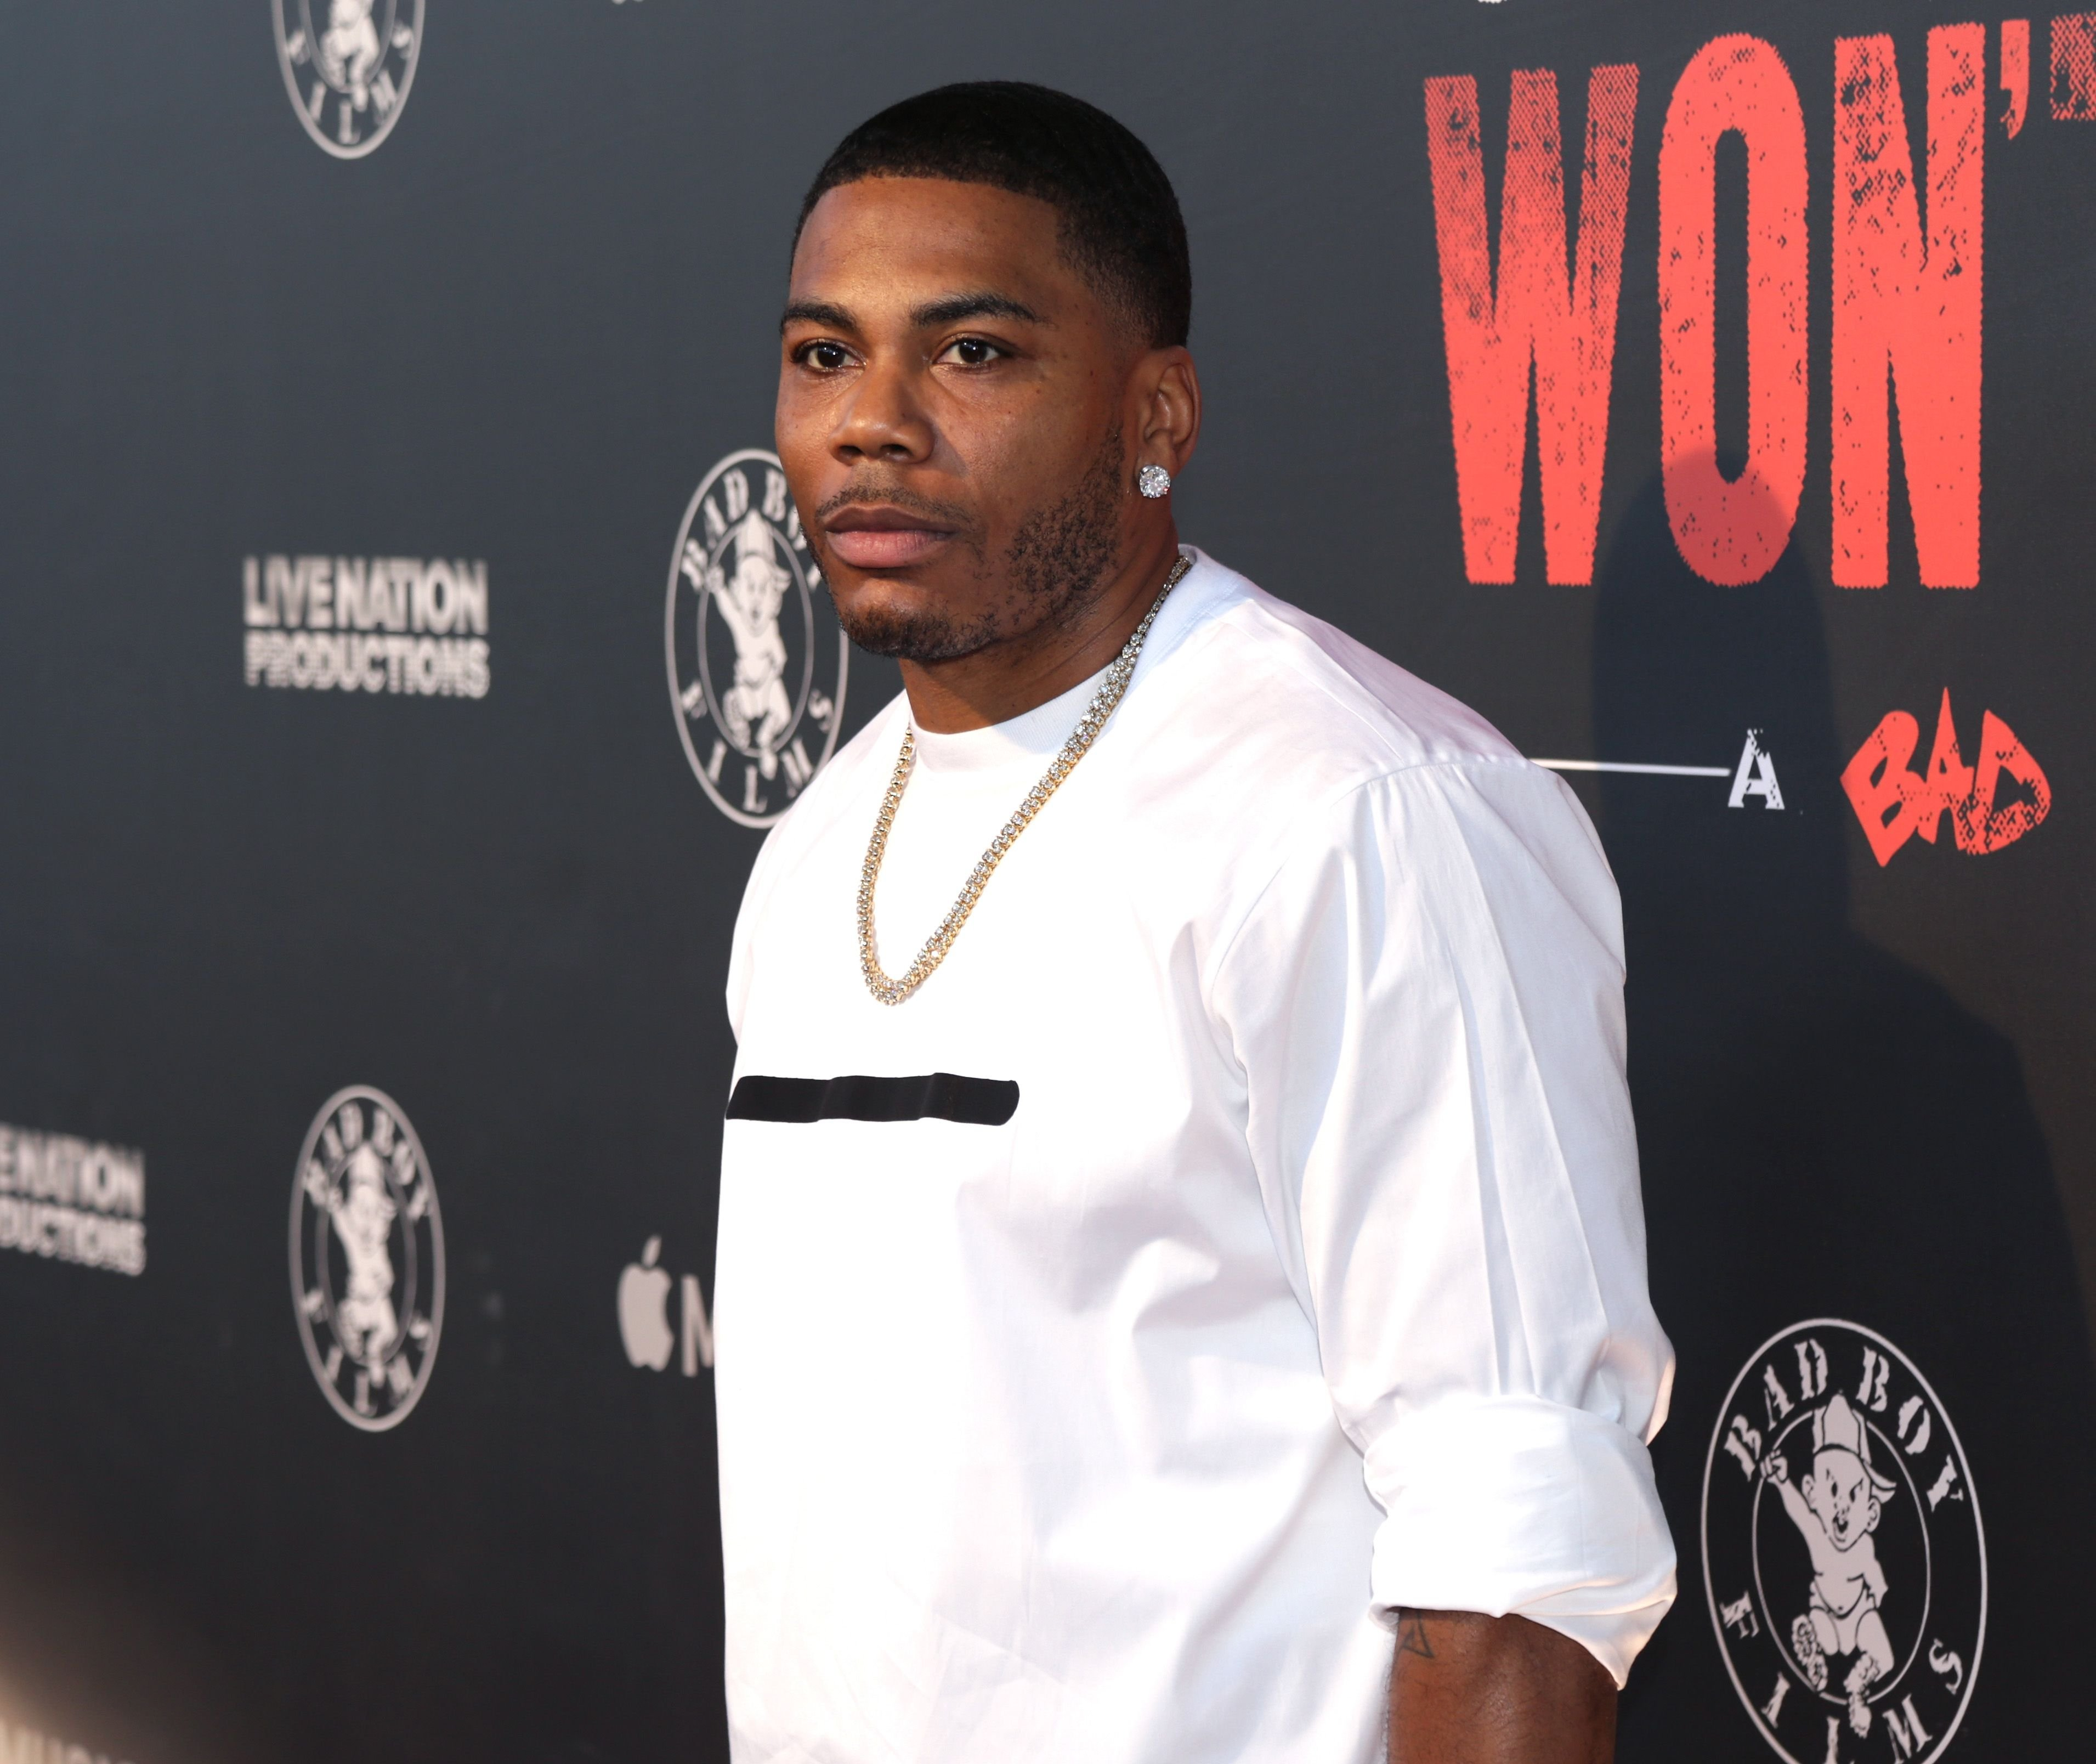 """Nelly at the premiere of """"Can't Stop Won't Stop"""" on June 21, 2017 